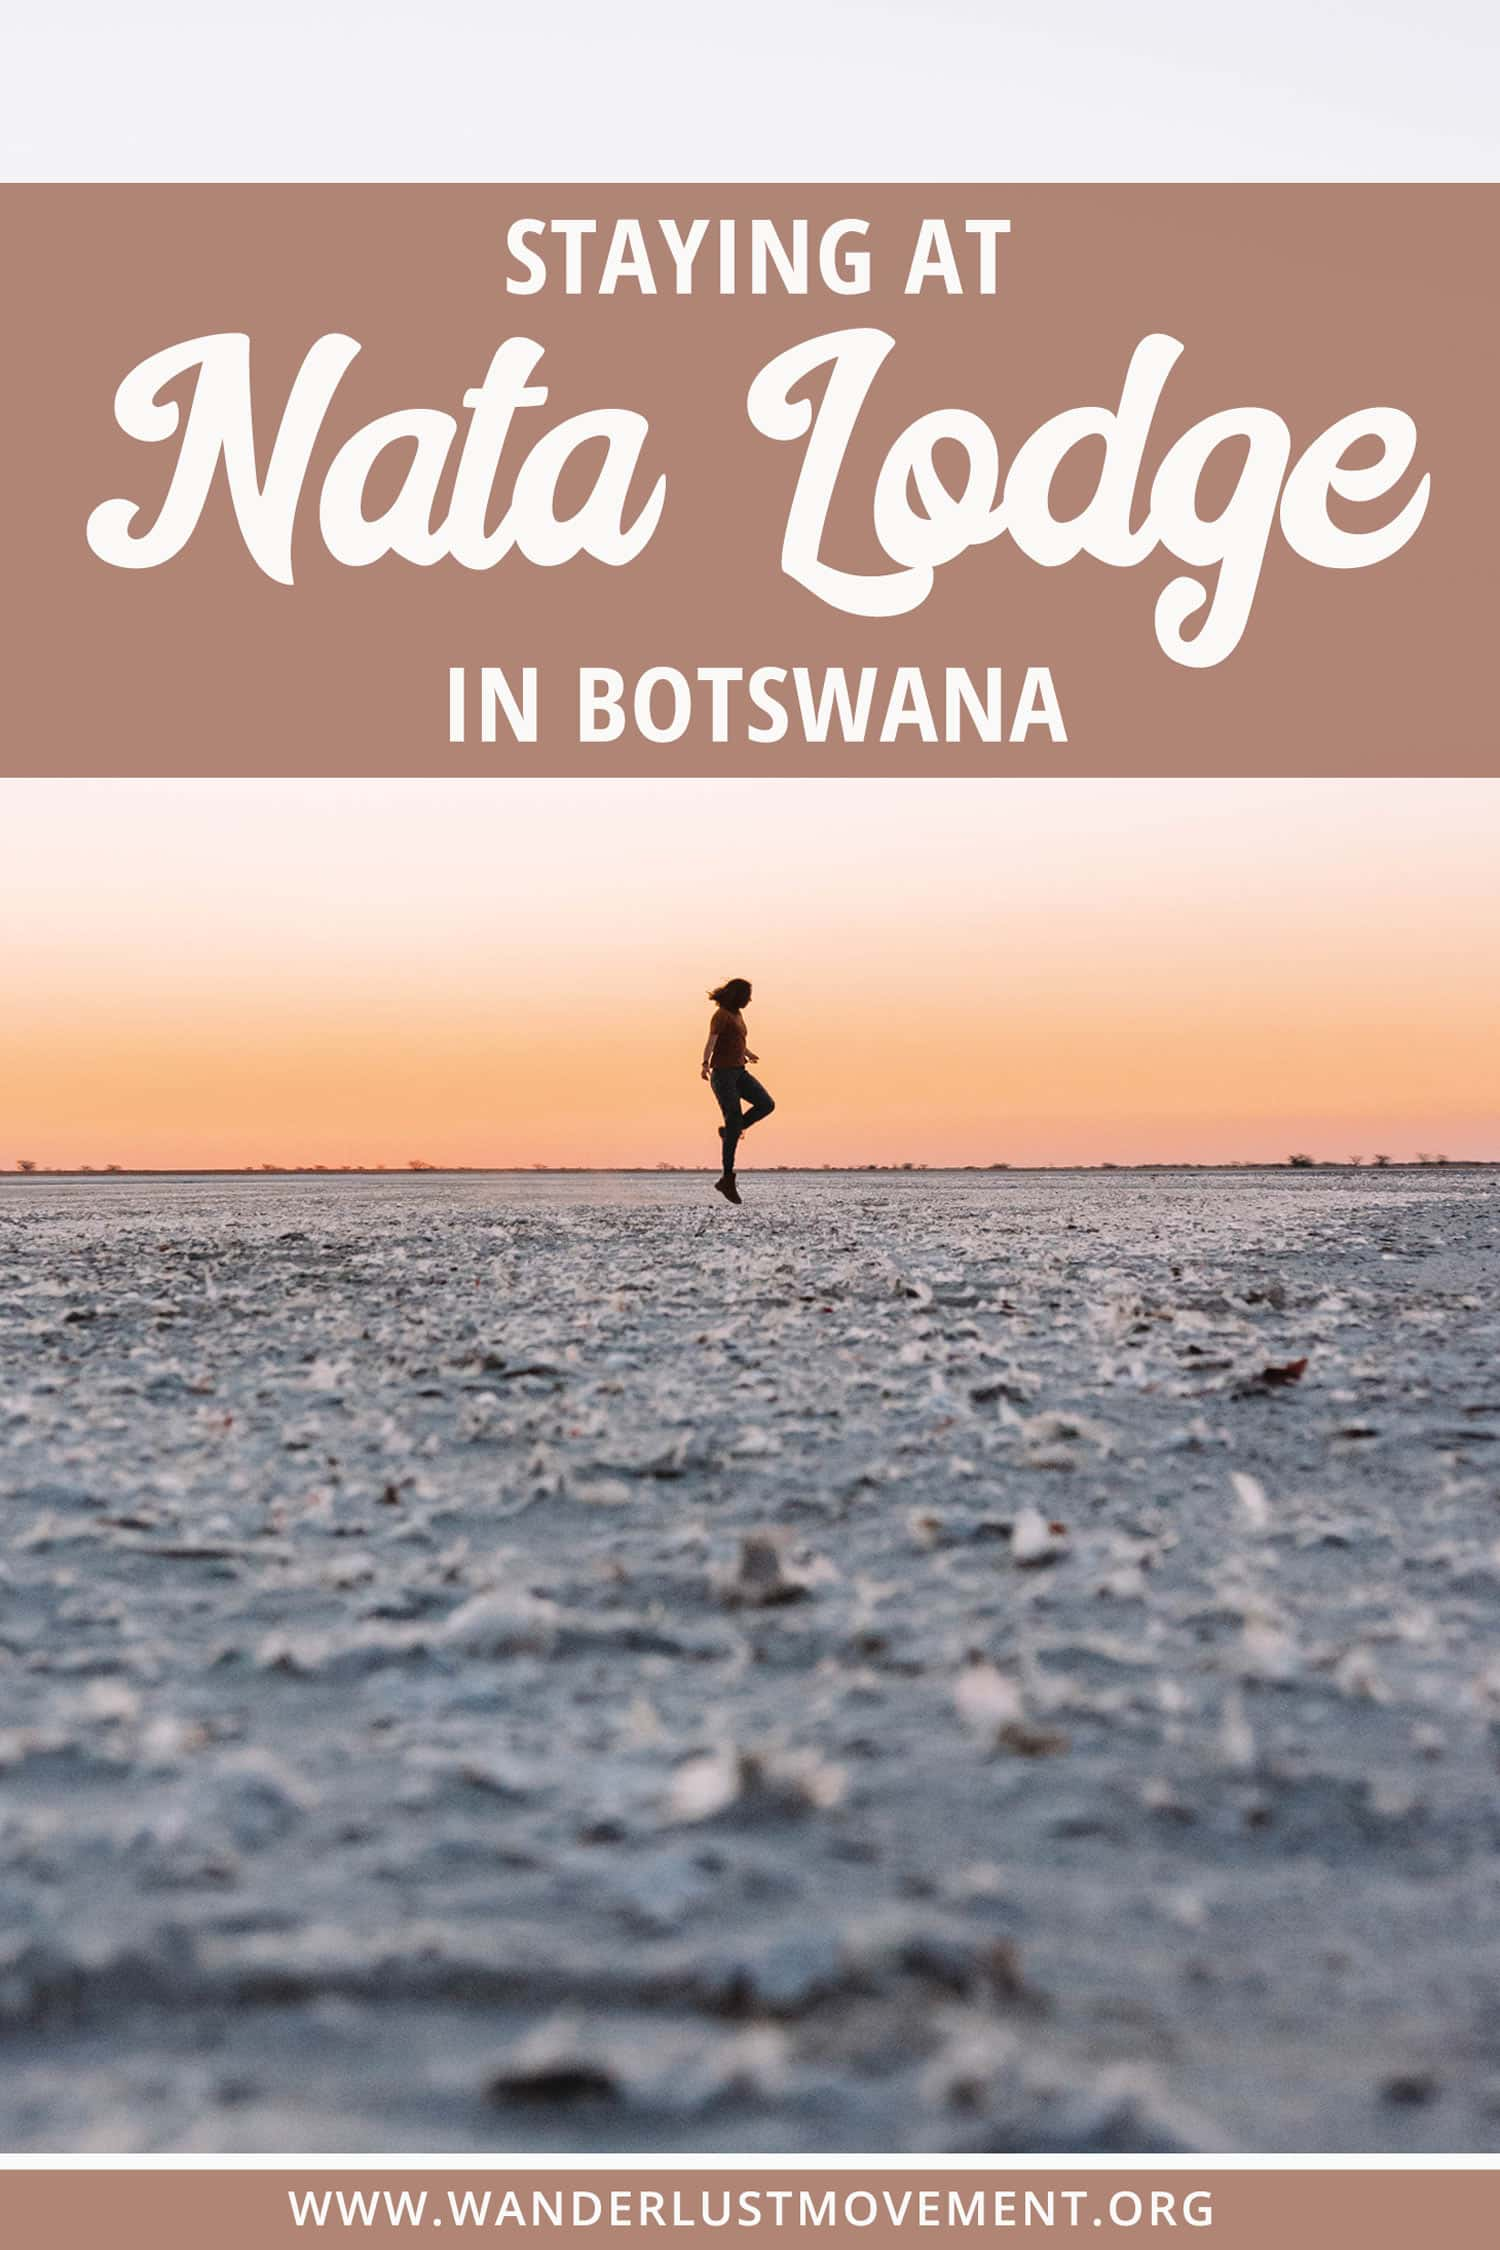 Nata Lodge is located in Makgadikgadi Pans National Park in Botswana. It\'s home to one of the largest salt flats in the world and the remains of Africa\'s largest inland sea. Stay at the rustic Nata Lodge and you\'ll be in prime position to watch thousands of flamingos turn the sky pink over Botswana\'s wet season. #botswana #safari #africa #travel #hotels